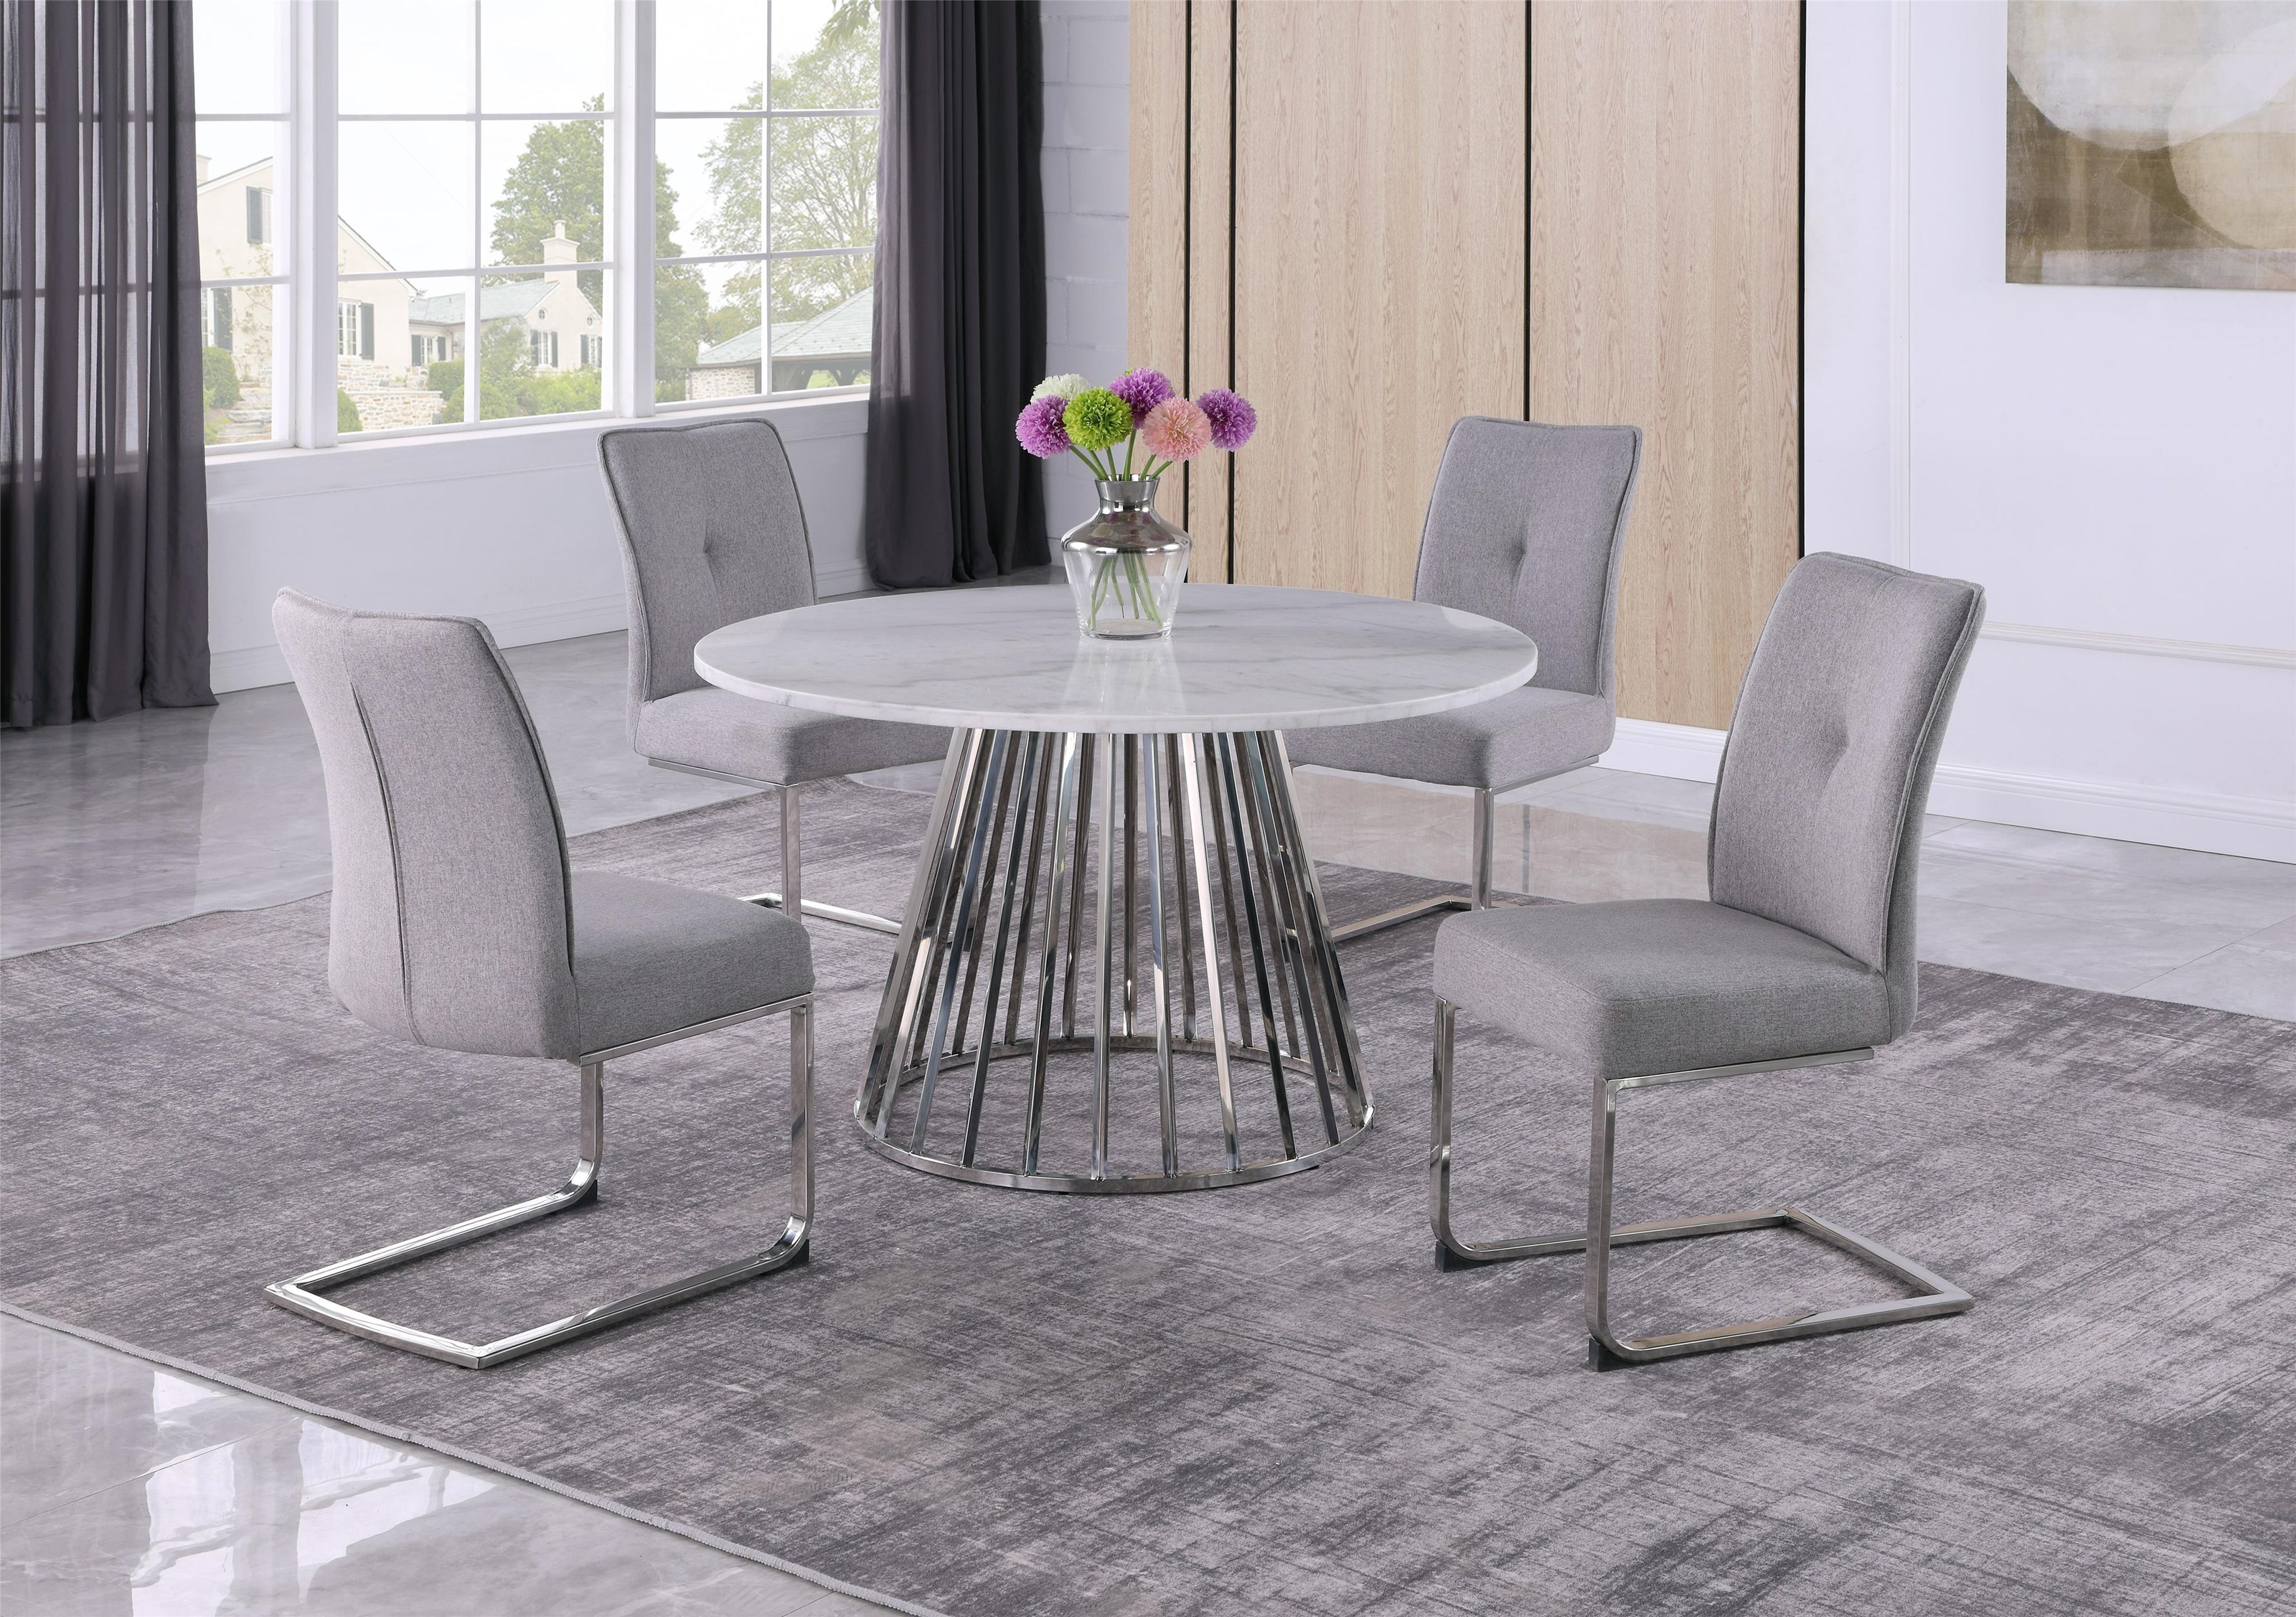 C8752 Marble & Stainless Steel Dining by Lifestyle at Baer's Furniture